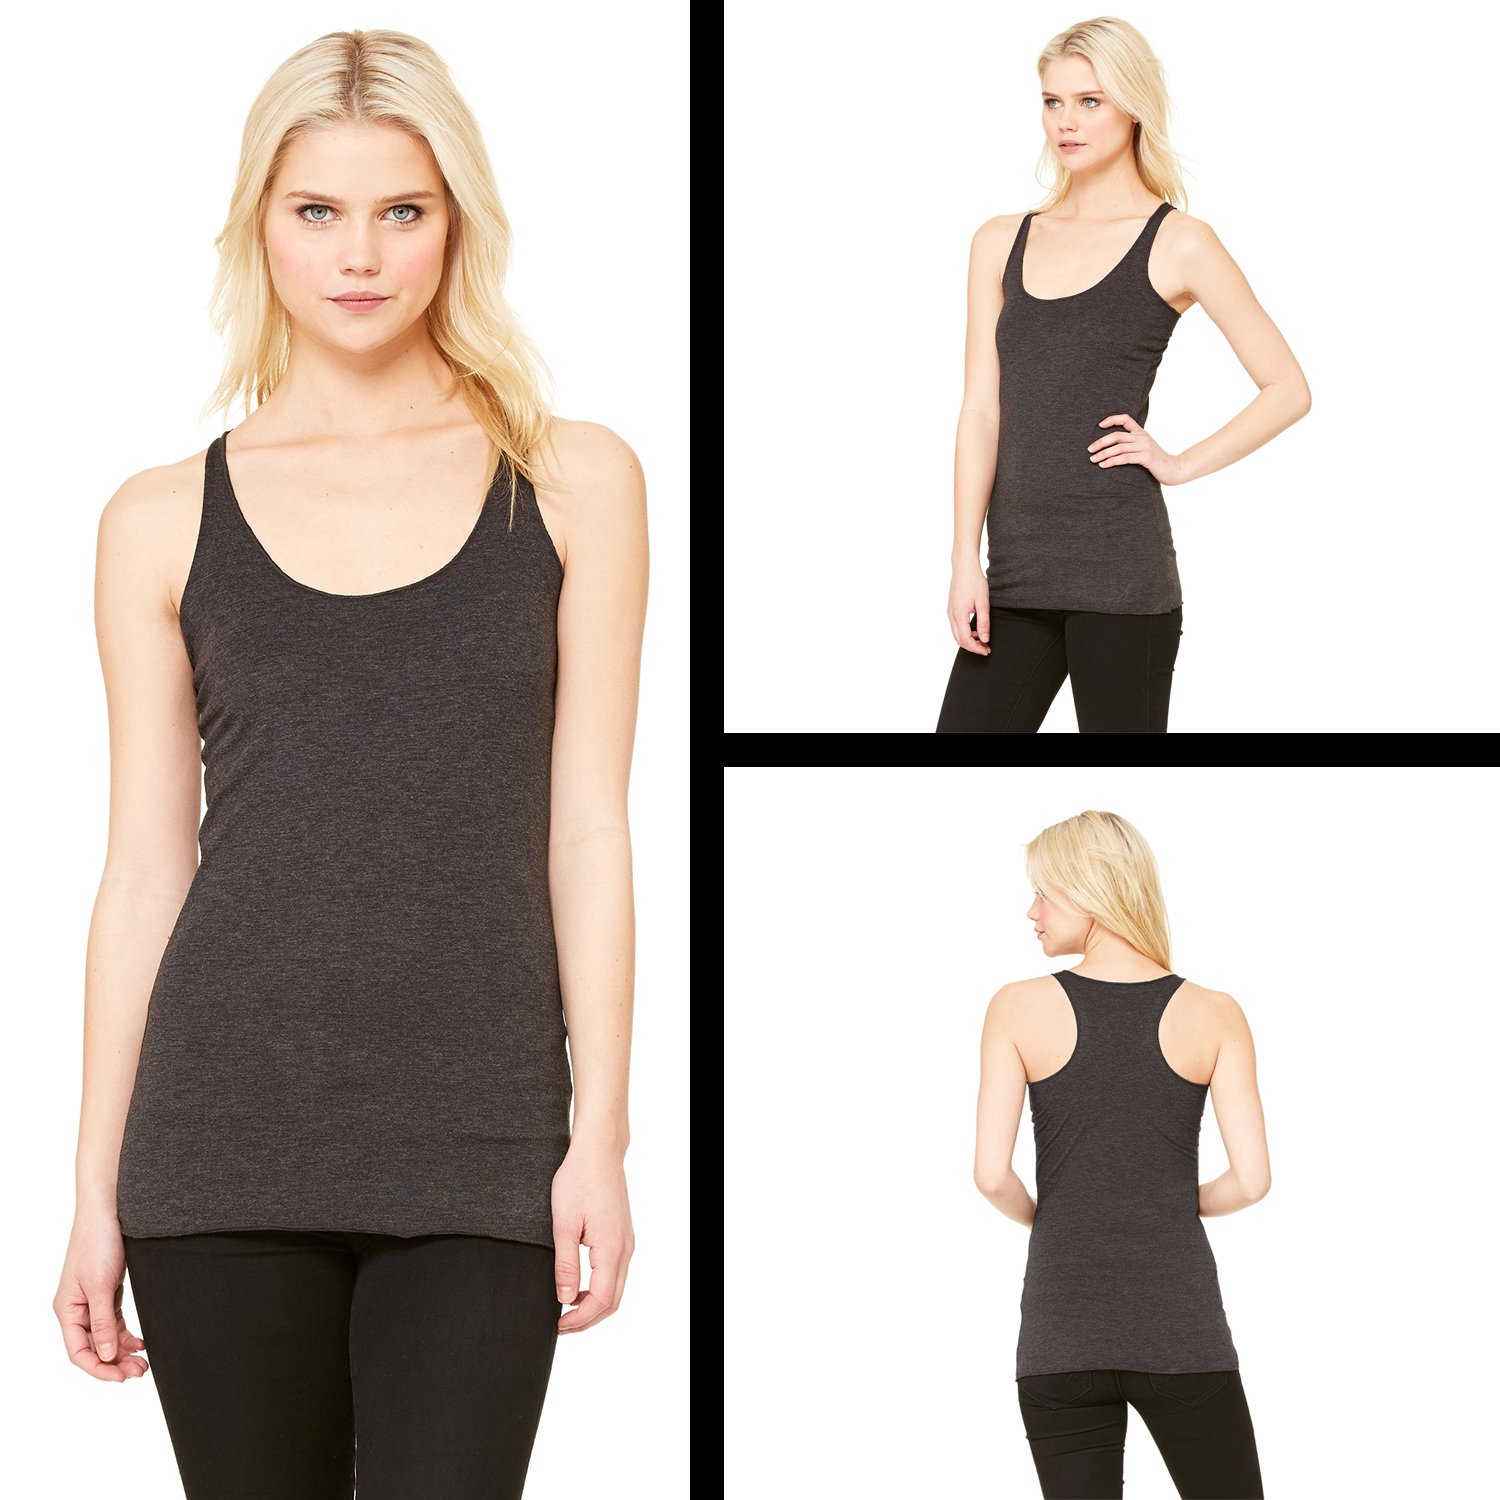 FerociTees Shmoopy Shmoopie Romance and Valentines Day Triblend Racerback Tank Top for Women